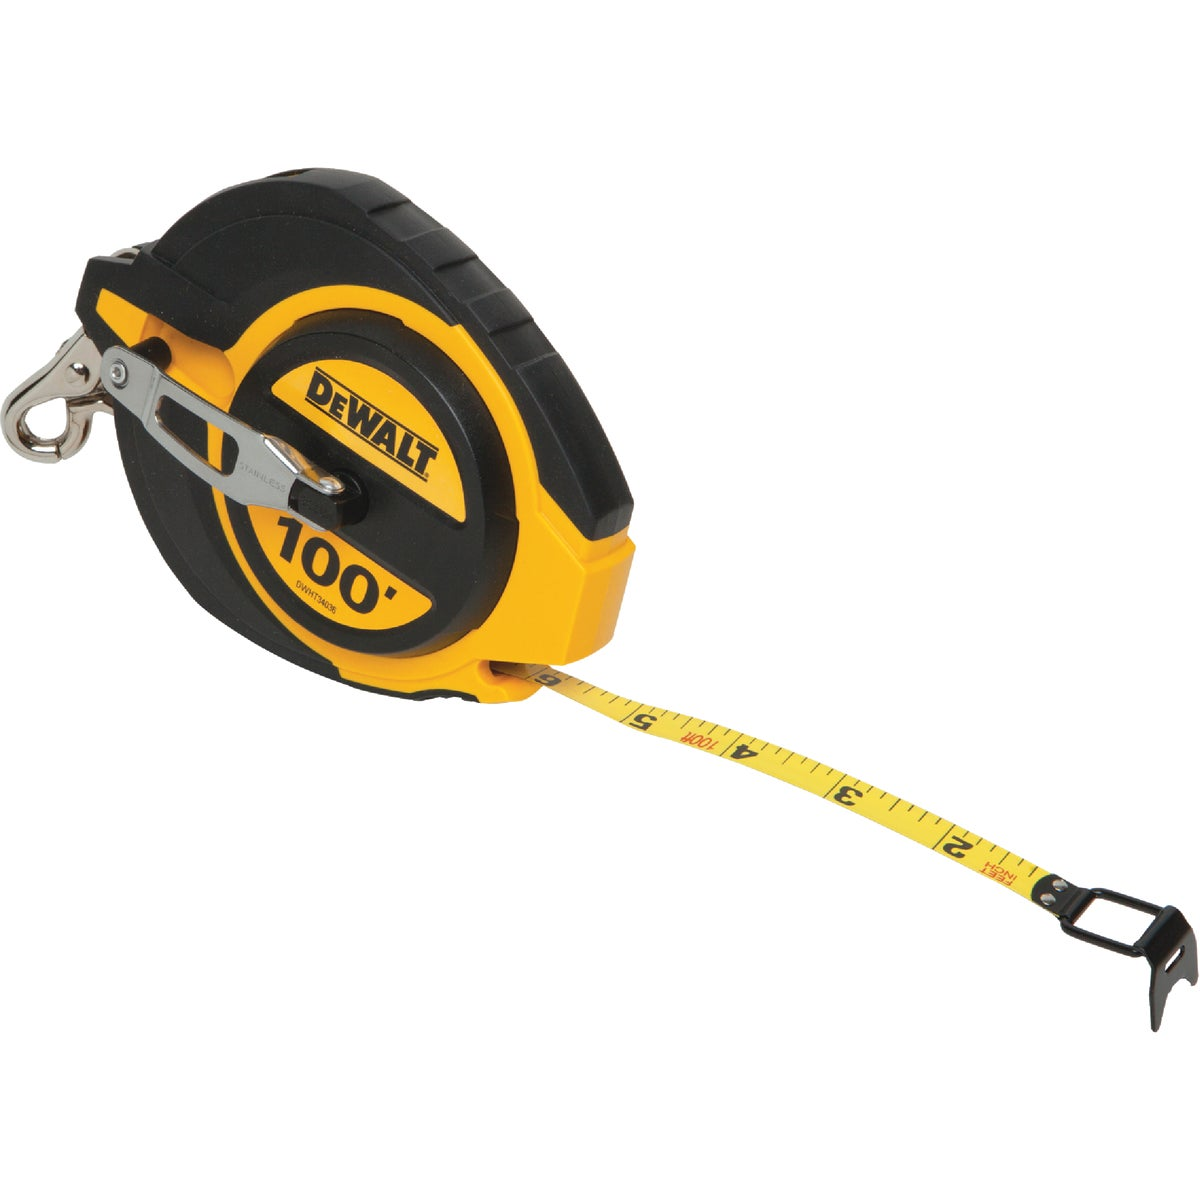 100' CLOSED TAPE REEL - DWHT34036L by Stanley Tools